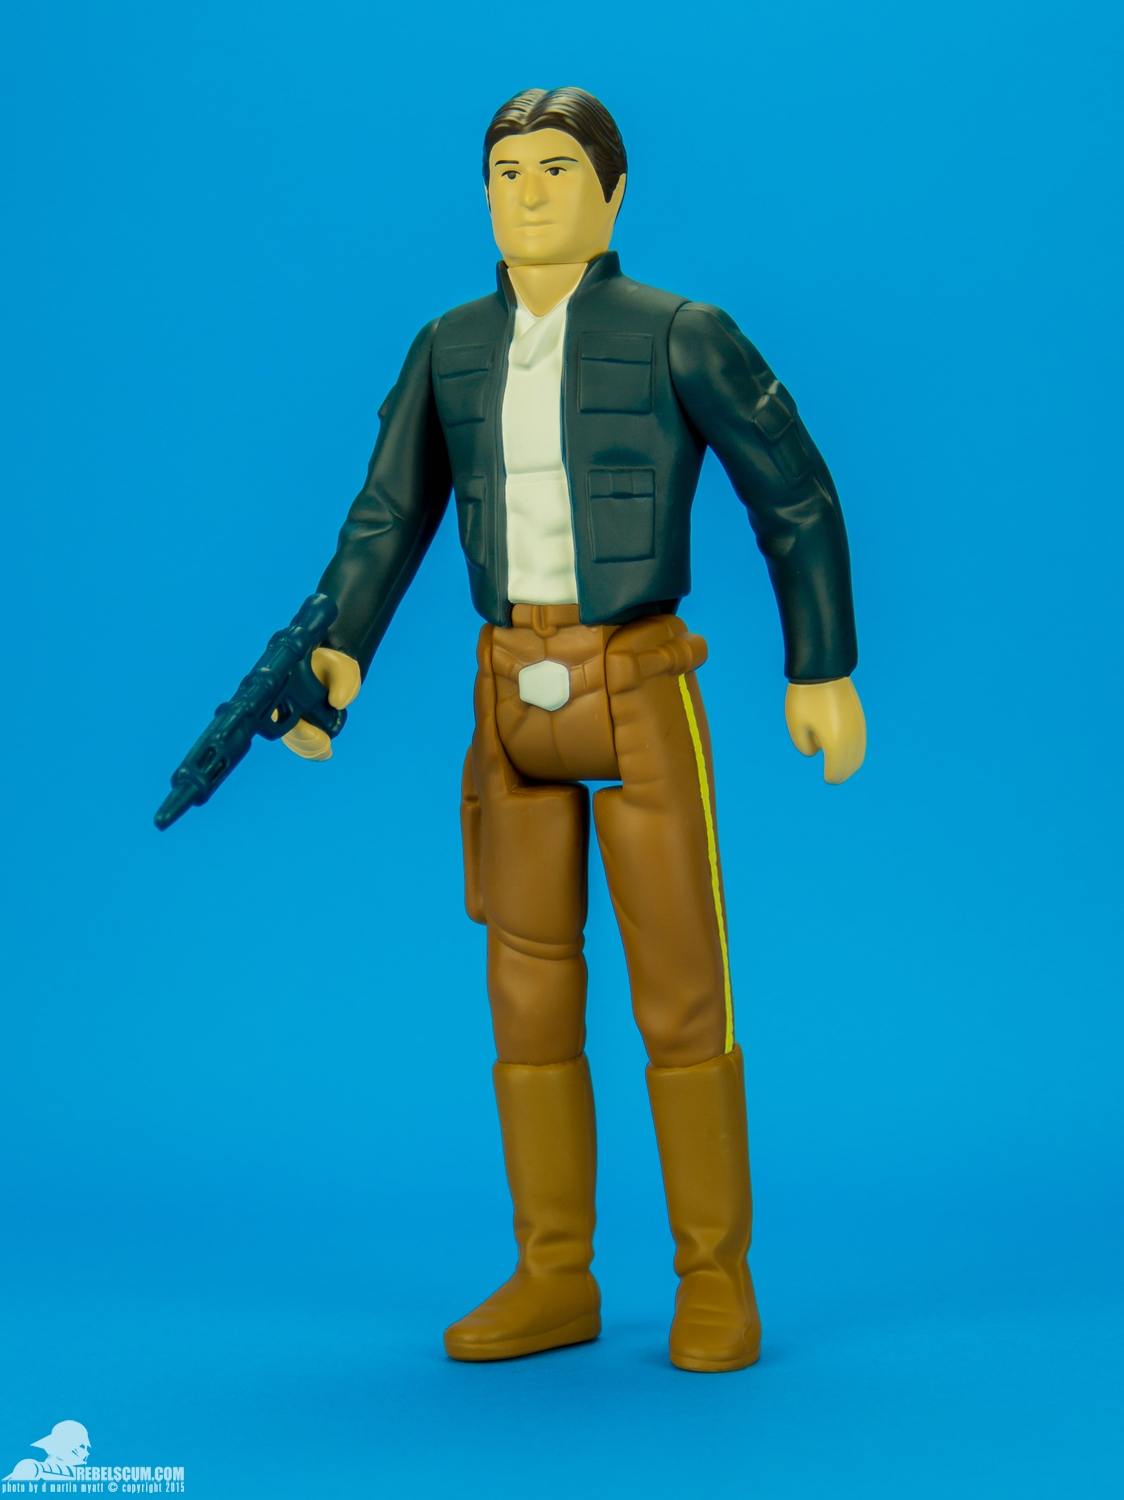 Han-Solo-Bespin-Outfit-Gentle-Giant-Jumbo-Kenner-010.jpg